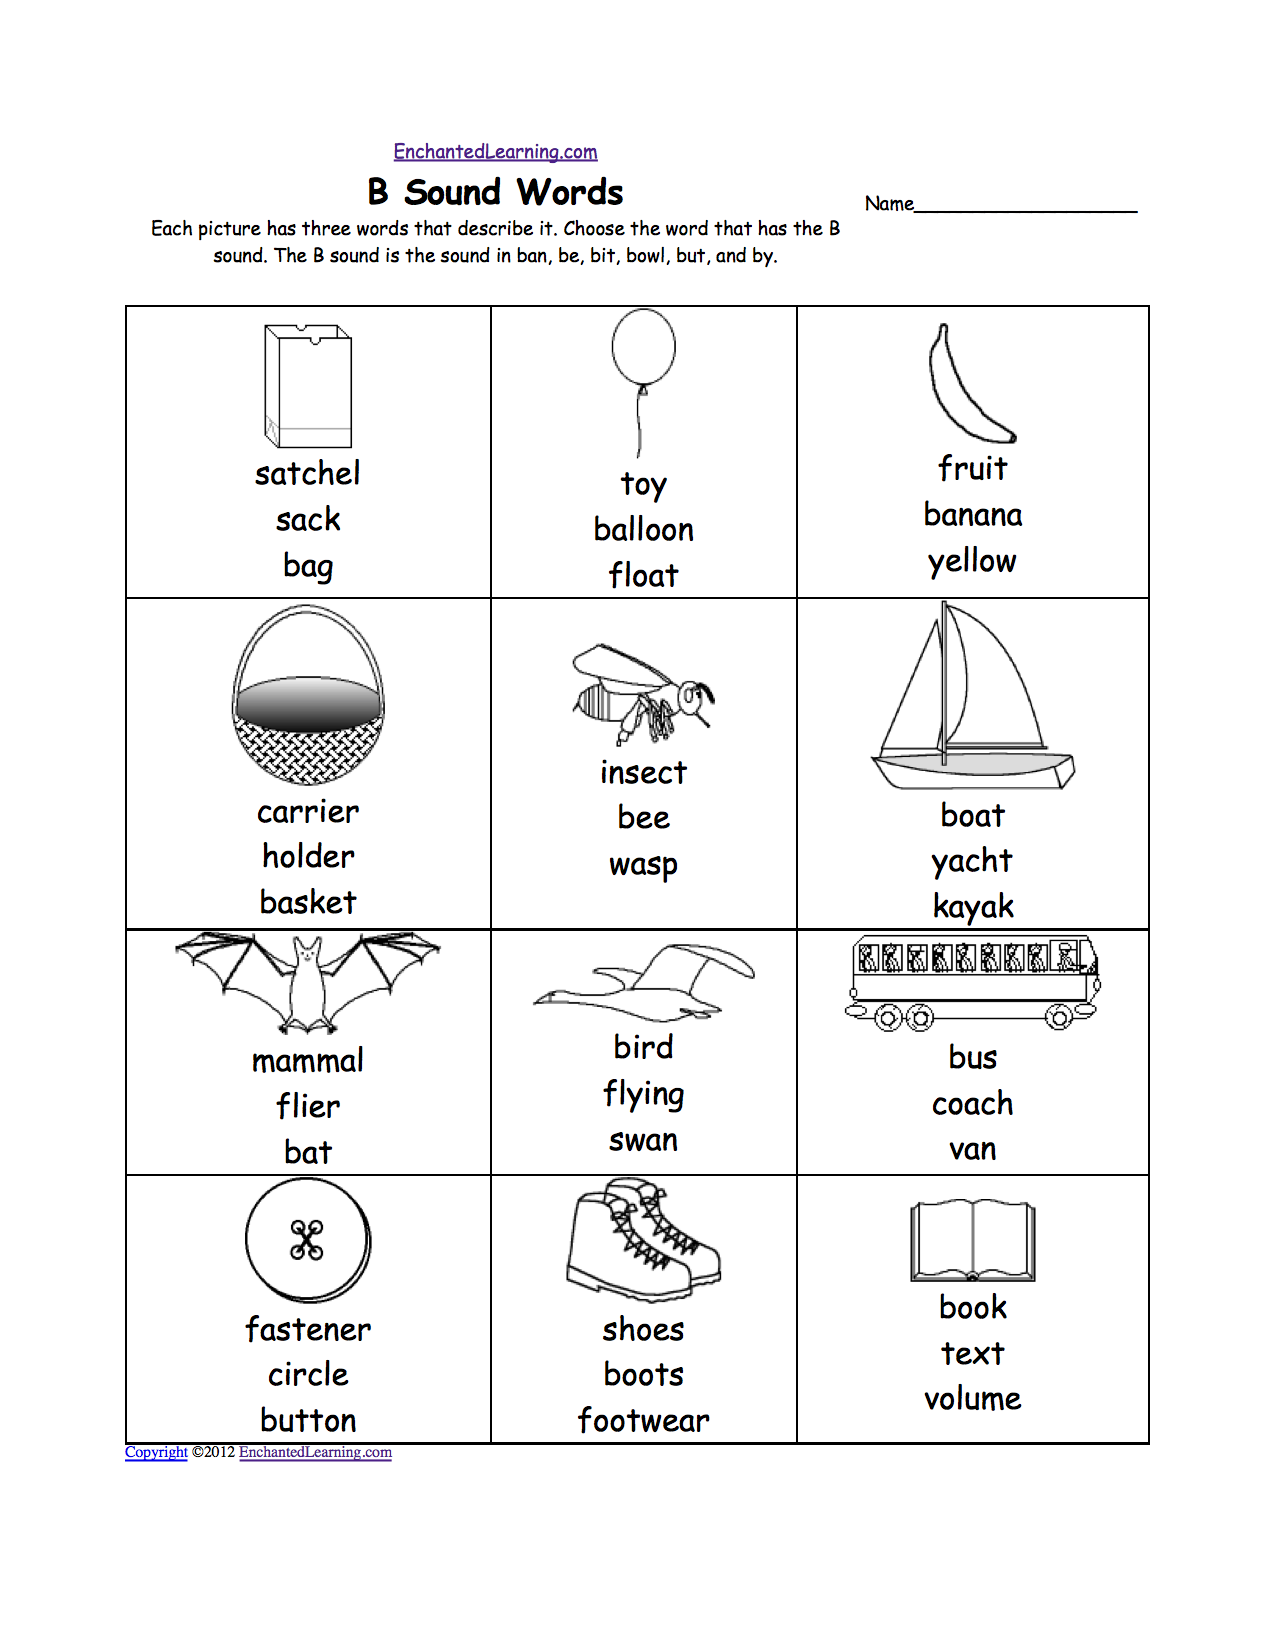 Aldiablosus  Scenic Phonics Worksheets Multiple Choice Worksheets To Print  With Fascinating Quotbquot Sound Phonics Worksheet Multiple Choice Each Picture Has Three Words That Describe It Choose The Word That Has A Quotbquot Sound The Quotbquot Sound Is The Sound  With Attractive Connotation And Denotation Worksheets For Middle School Also Simplifying Equations Worksheets In Addition Graphing Linear Equations Using A Table Worksheet And Instruments Of The Orchestra Worksheets As Well As Child Support Worksheet Utah Additionally Independent Events Worksheet From Enchantedlearningcom With Aldiablosus  Fascinating Phonics Worksheets Multiple Choice Worksheets To Print  With Attractive Quotbquot Sound Phonics Worksheet Multiple Choice Each Picture Has Three Words That Describe It Choose The Word That Has A Quotbquot Sound The Quotbquot Sound Is The Sound  And Scenic Connotation And Denotation Worksheets For Middle School Also Simplifying Equations Worksheets In Addition Graphing Linear Equations Using A Table Worksheet From Enchantedlearningcom